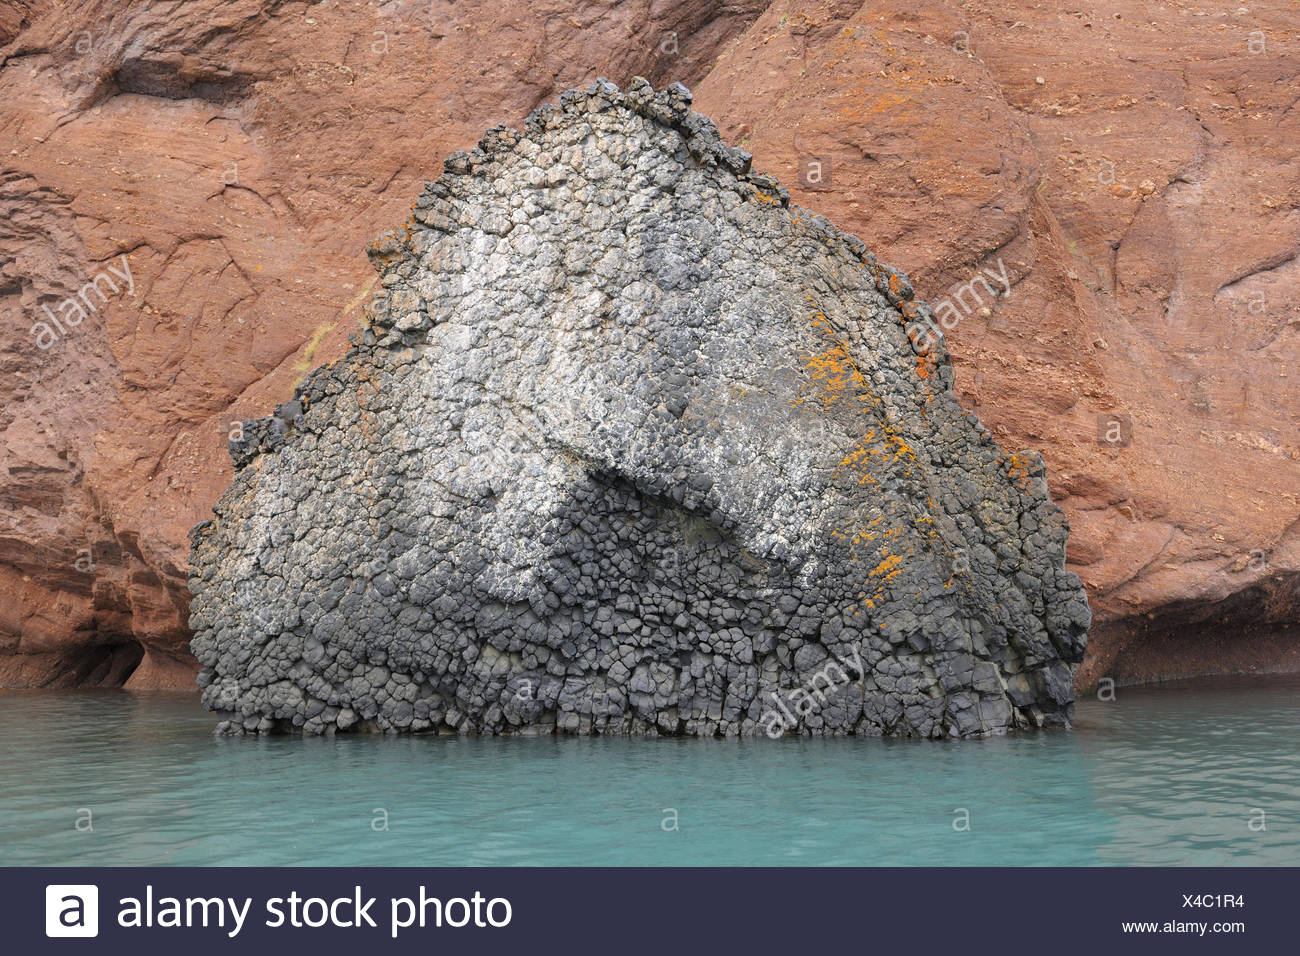 Geologic characteristic in the Rode fjord, Scoresbysund, Greenland, - Stock Image